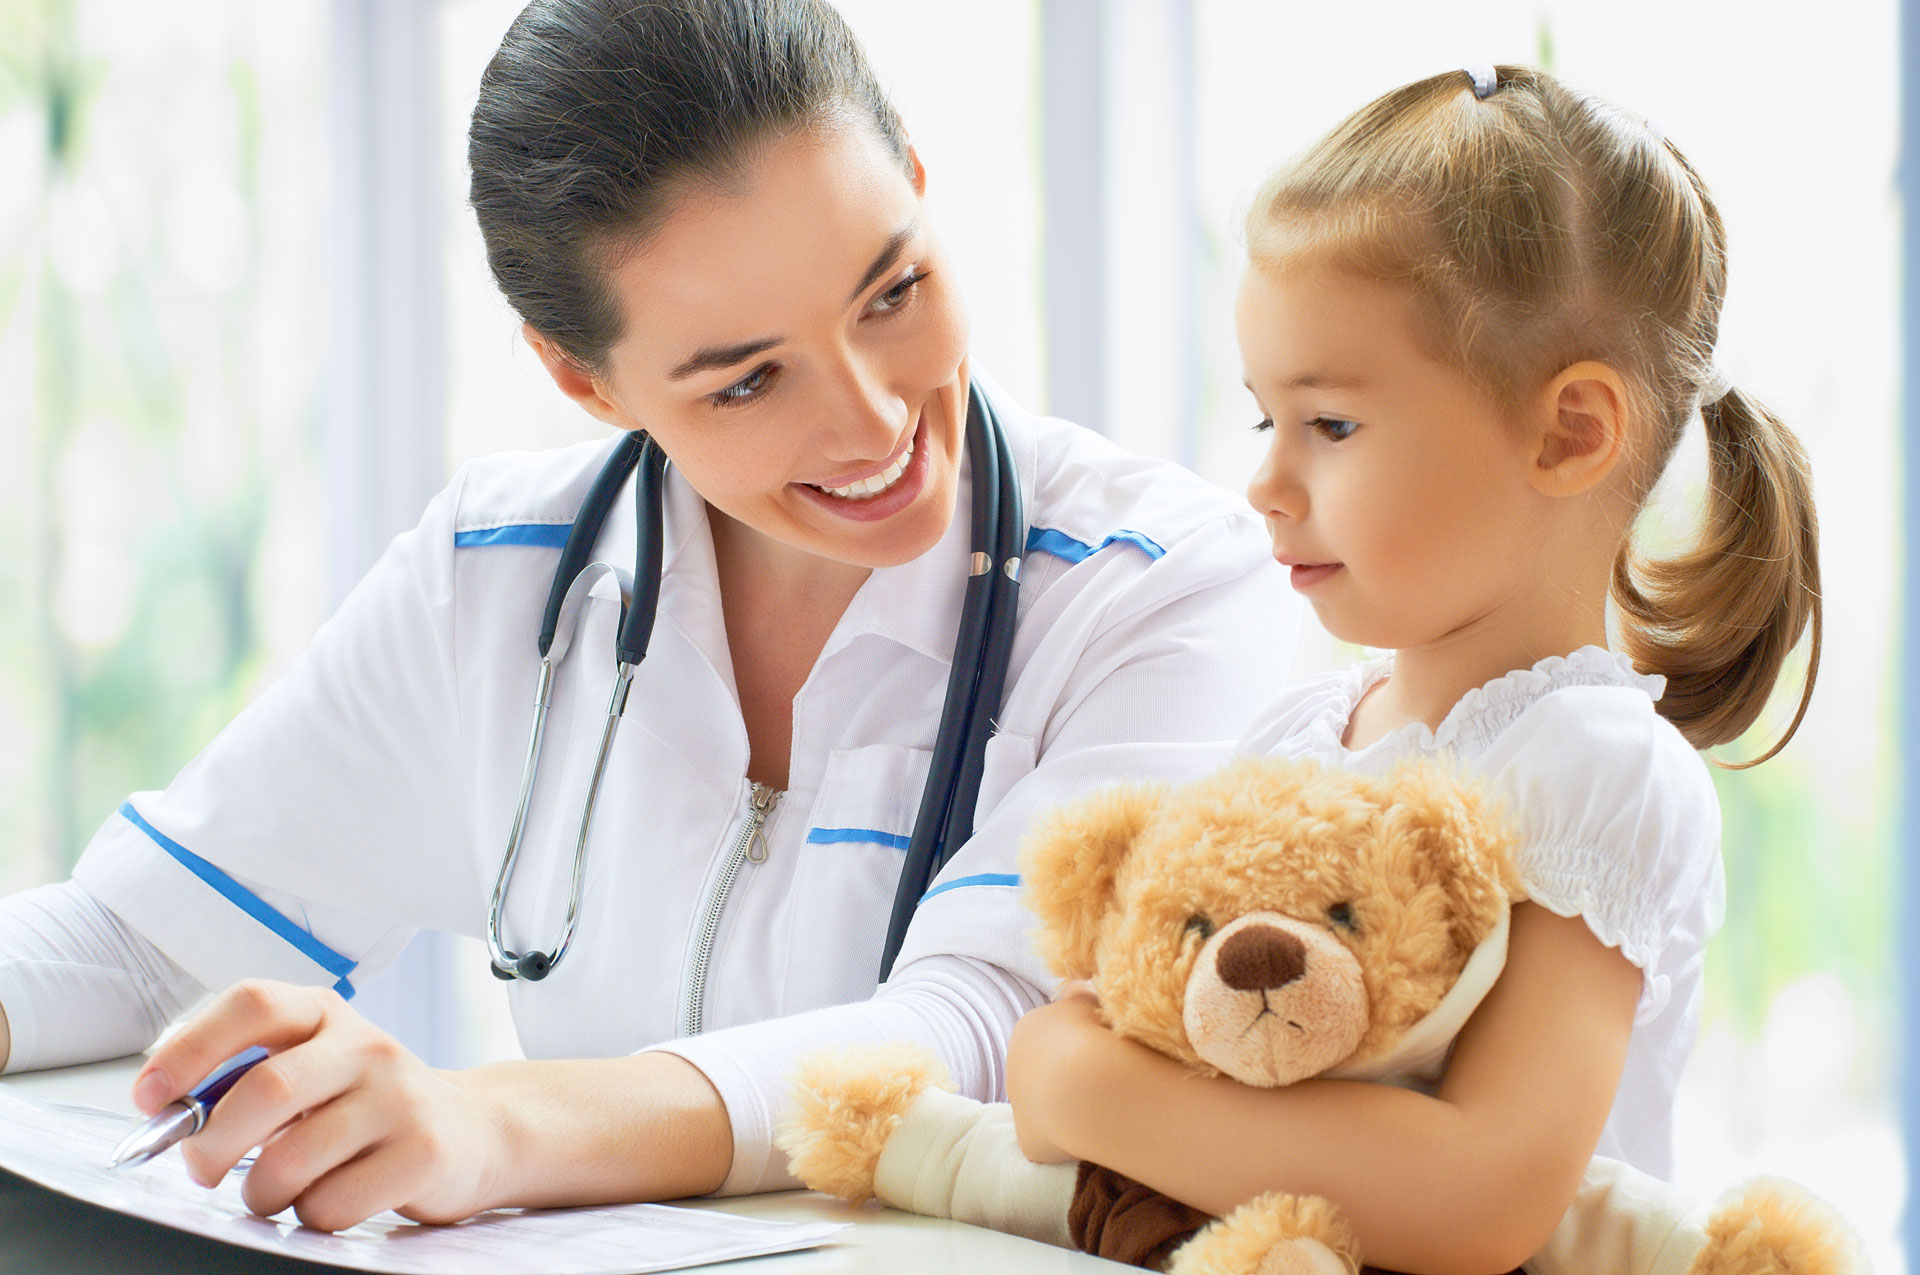 Pediatrician with Child